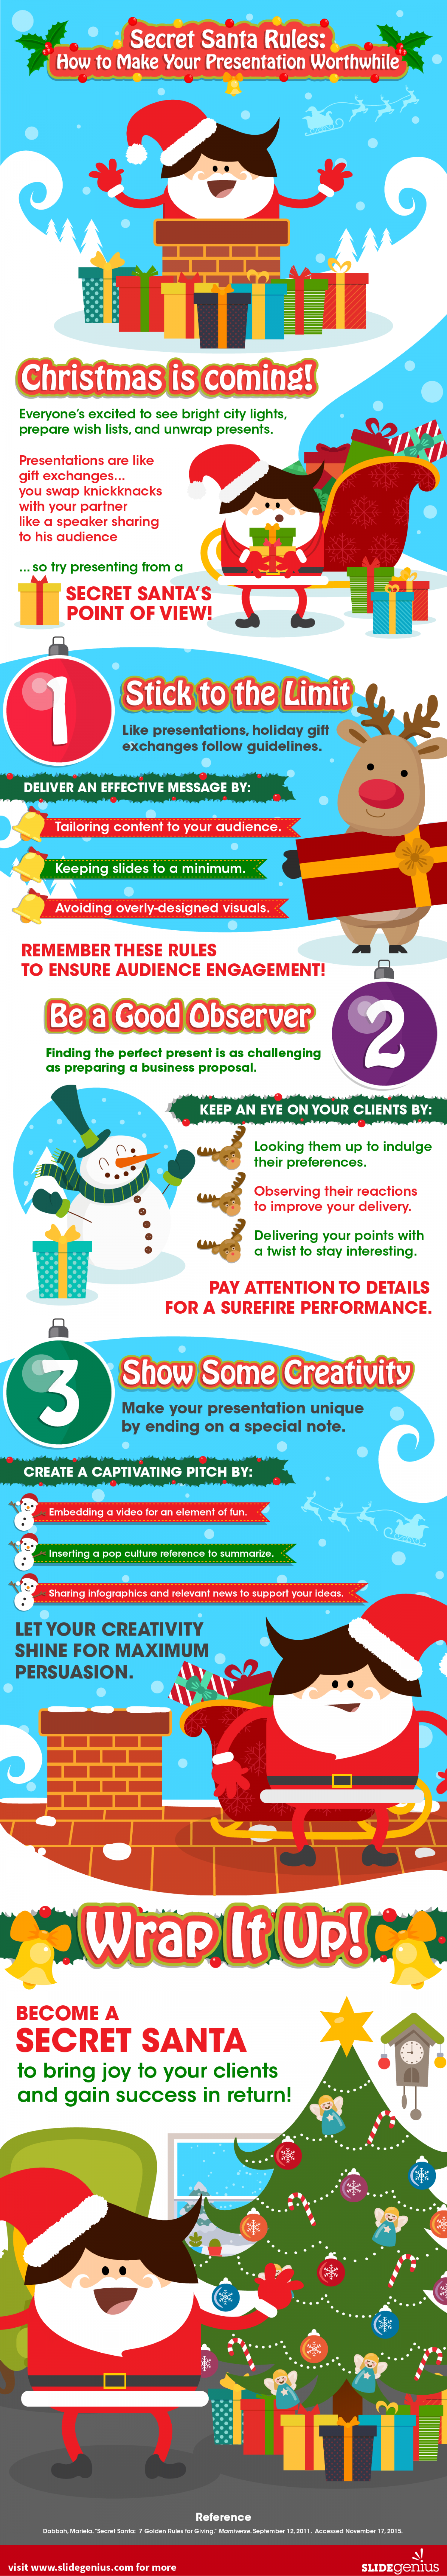 Secret Santa Rules: How to Make Your Presentation Worthwhile Infographic